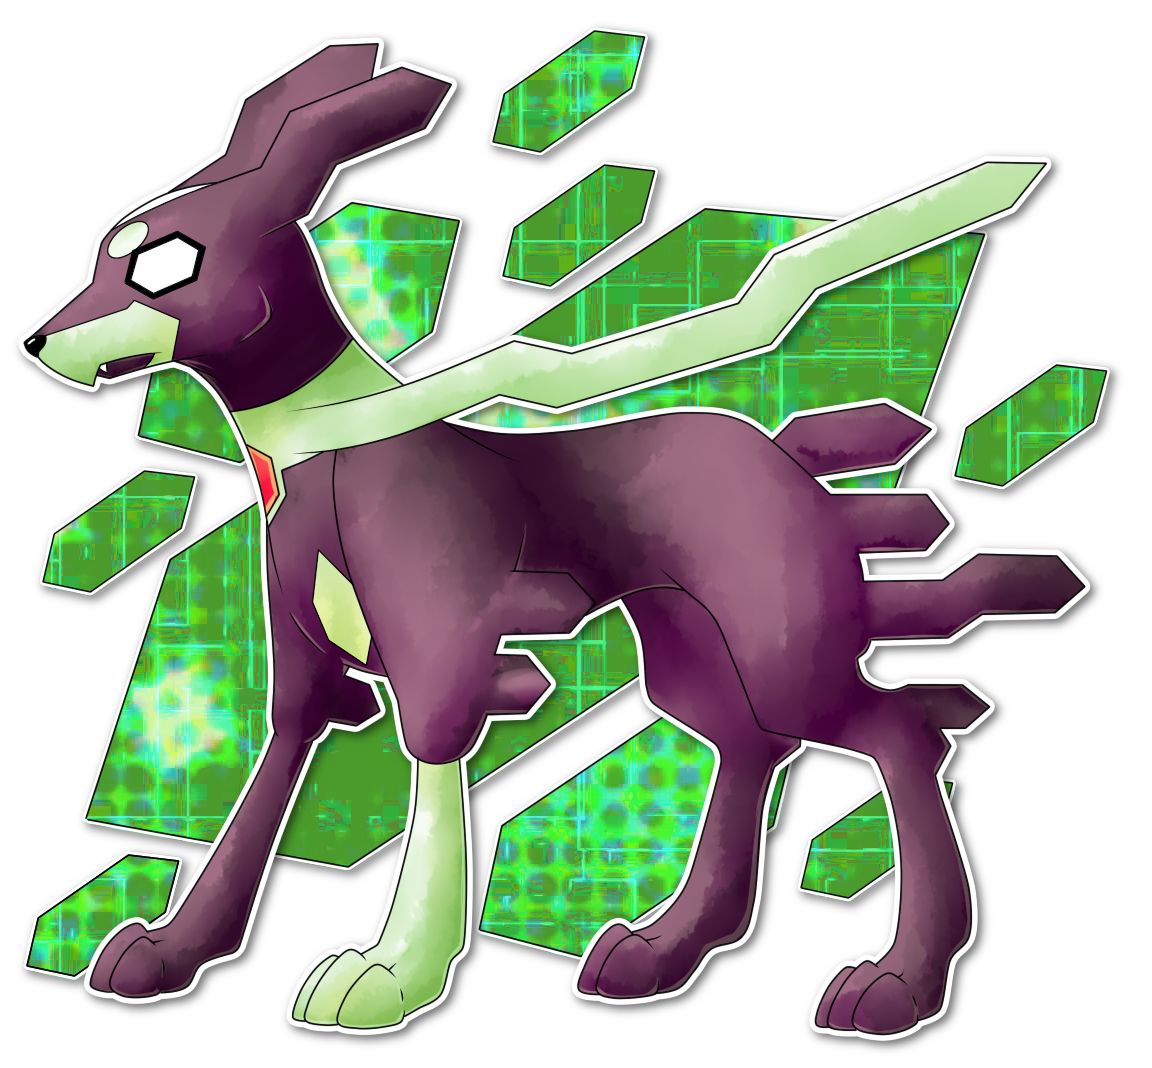 Zygarde 10% forme by AR-ameth on DeviantArt